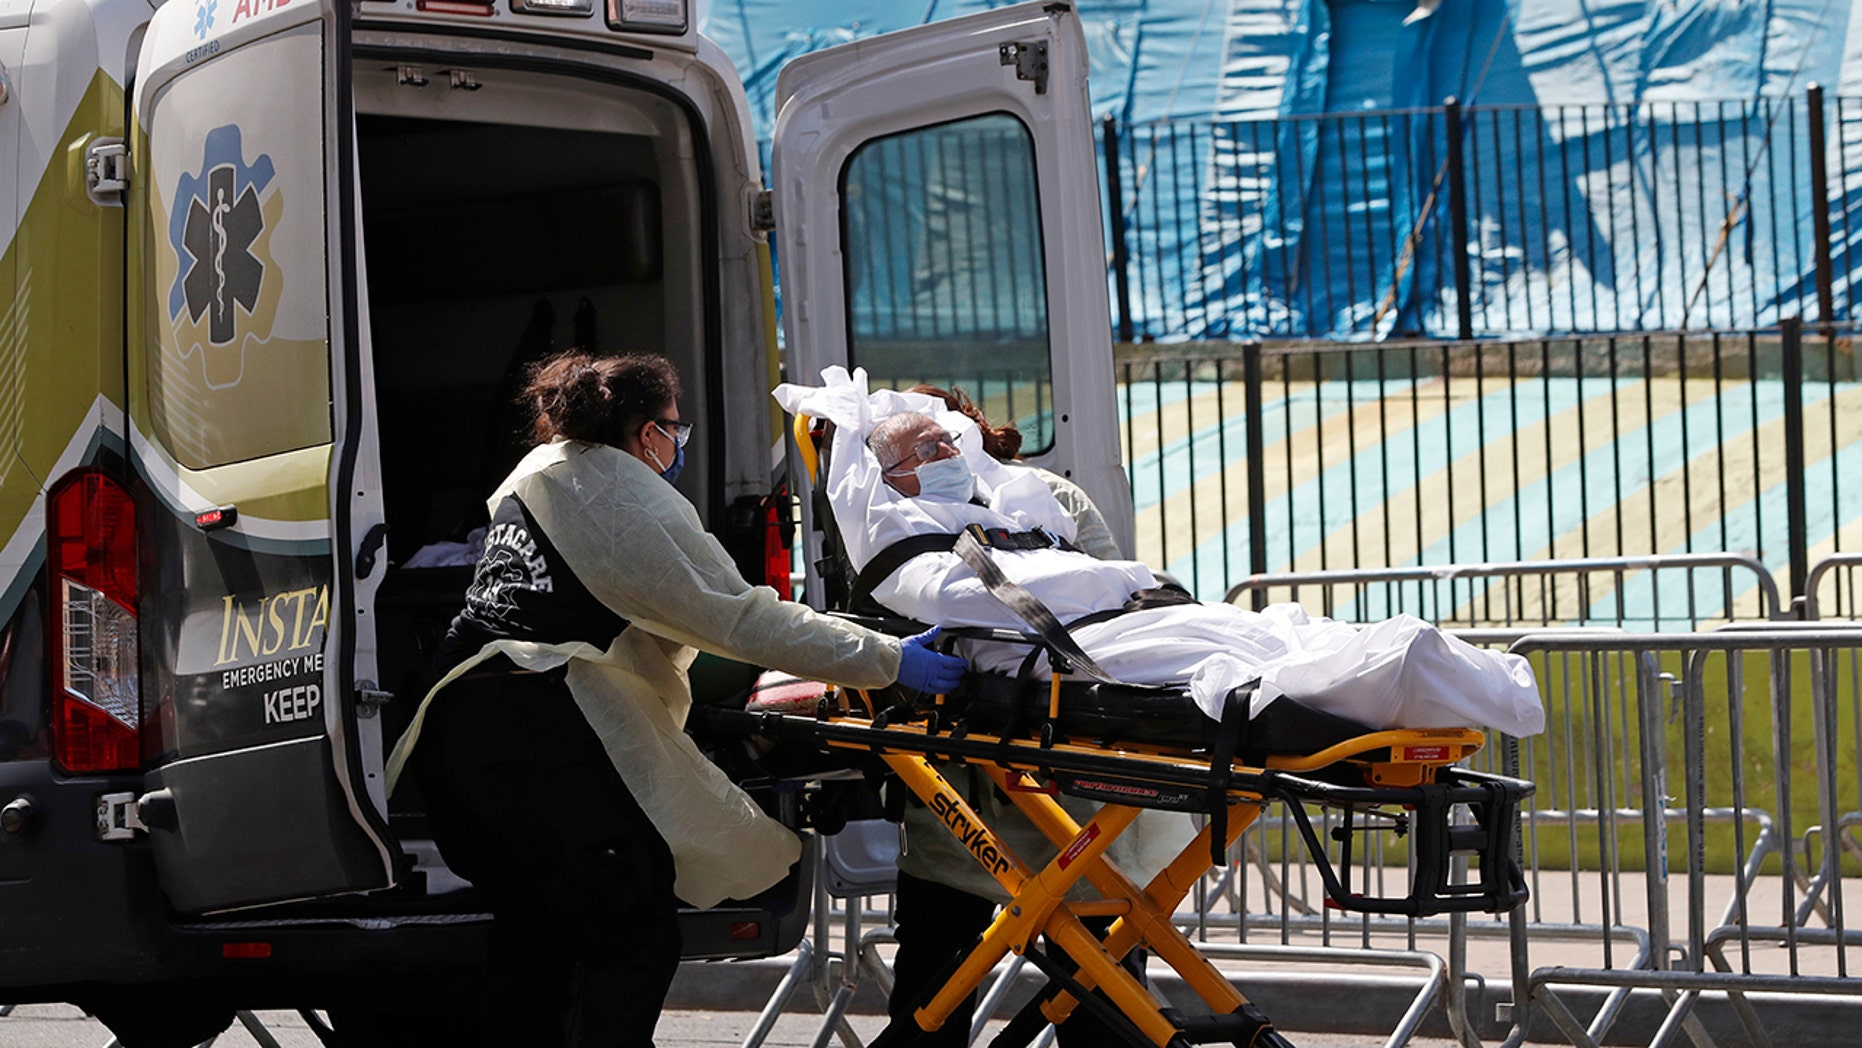 A patient is transferred from Elmhurst Hospital Center to a waiting ambulance during the current coronavirus outbreak, Tuesday, April 7, 2020, in New York. (AP Photo/Kathy Willens)